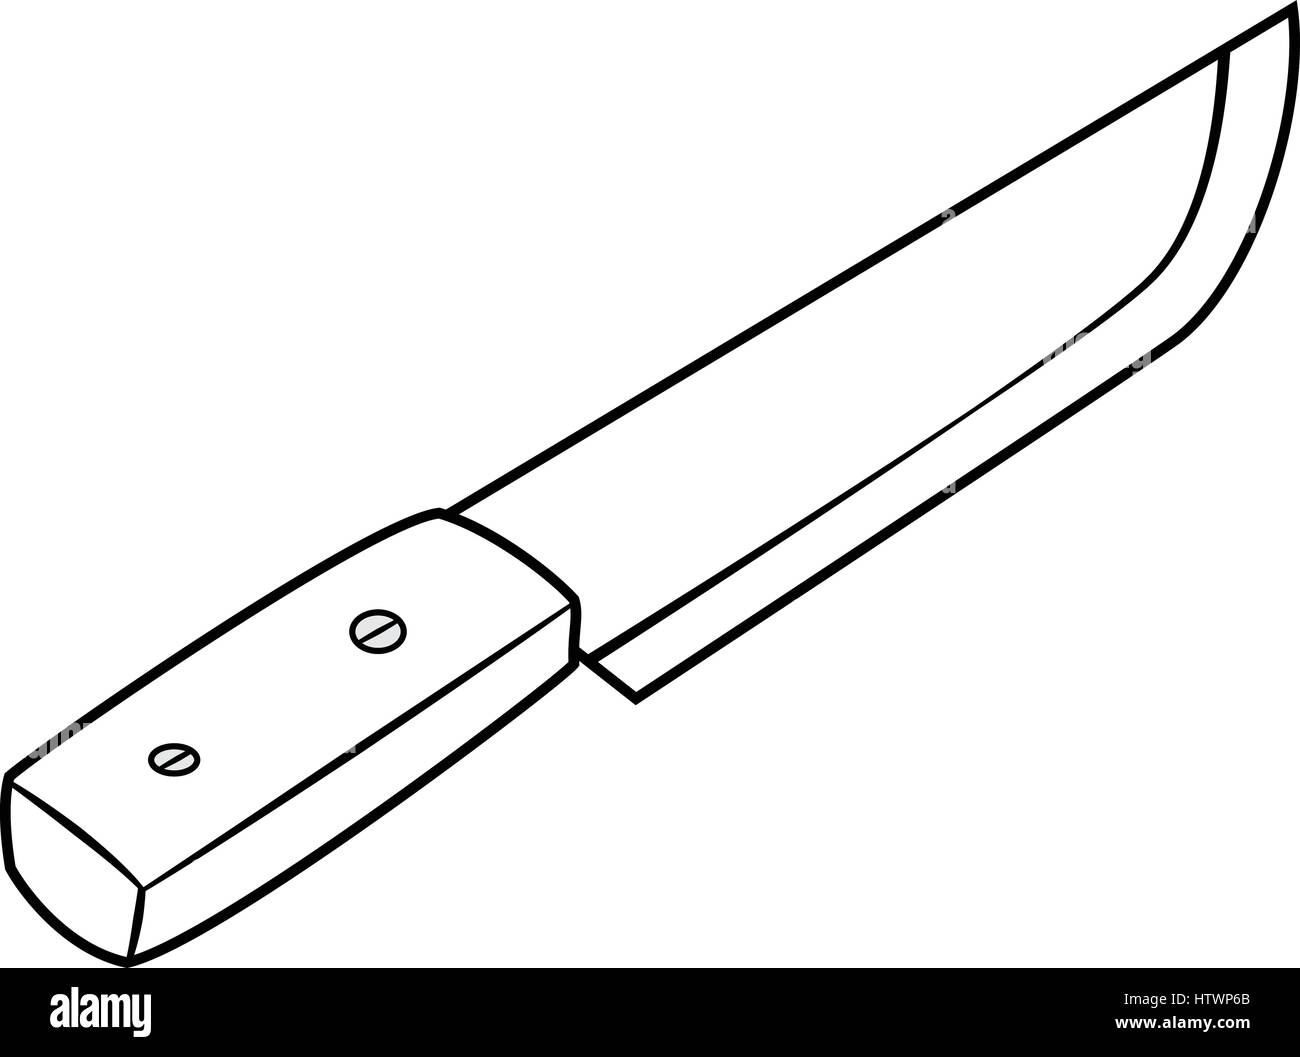 Chef knife illustration